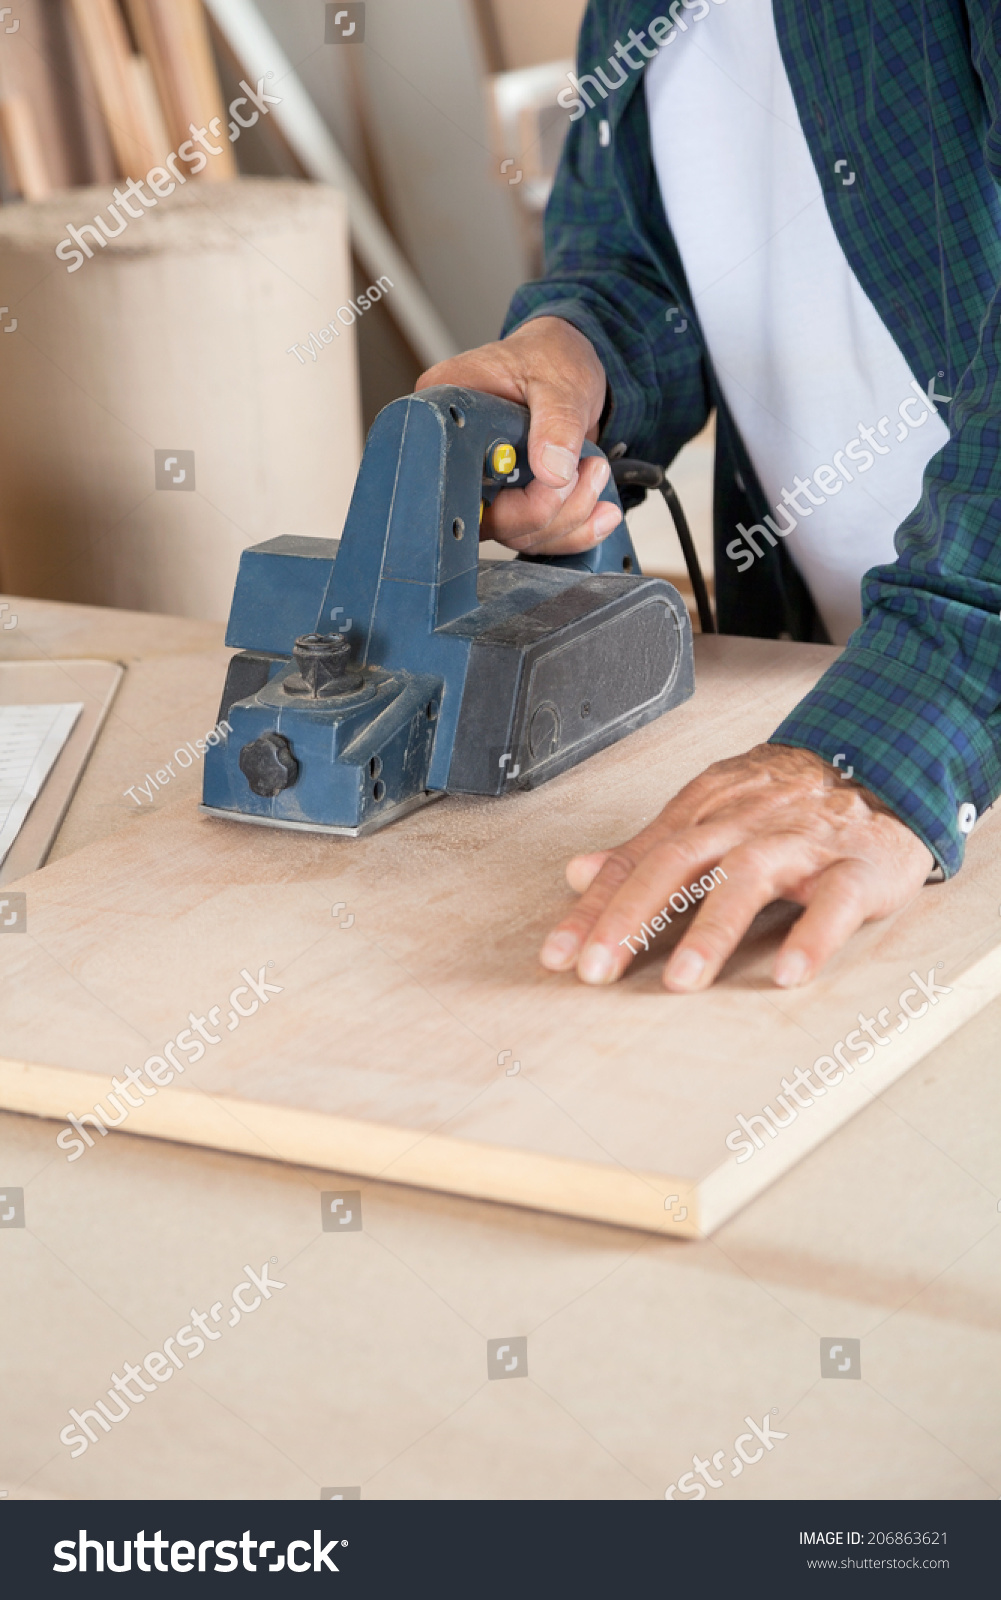 Carpentry Carpenter Woodworker Woodworking Wooden: Midsection Carpenter Using Electric Planer On Stock Photo